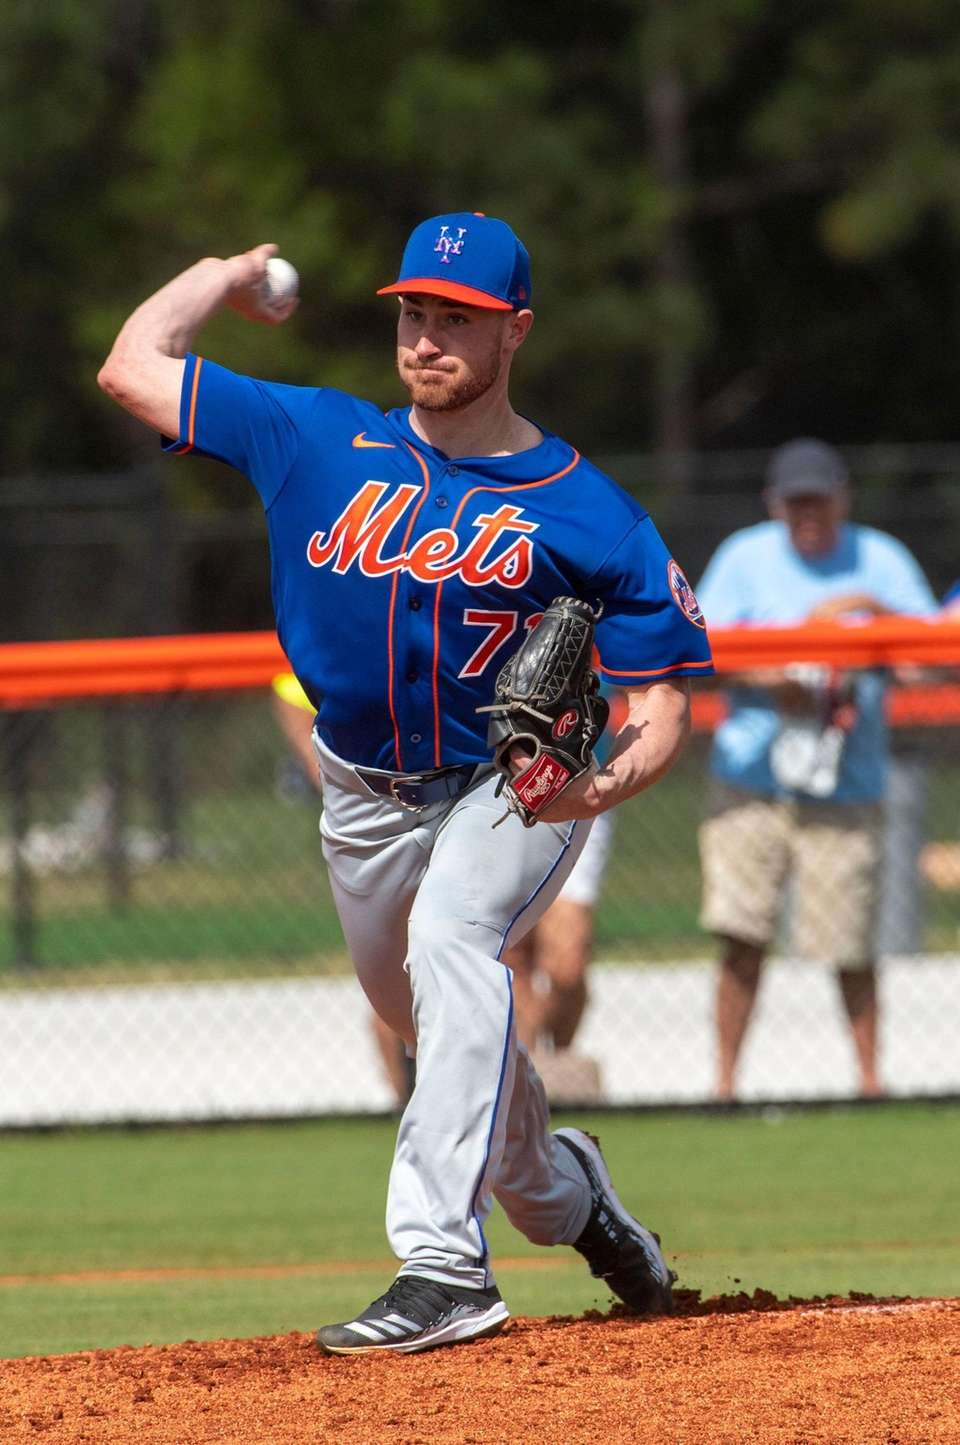 New York Mets pitcher Nick Rumbelow during a